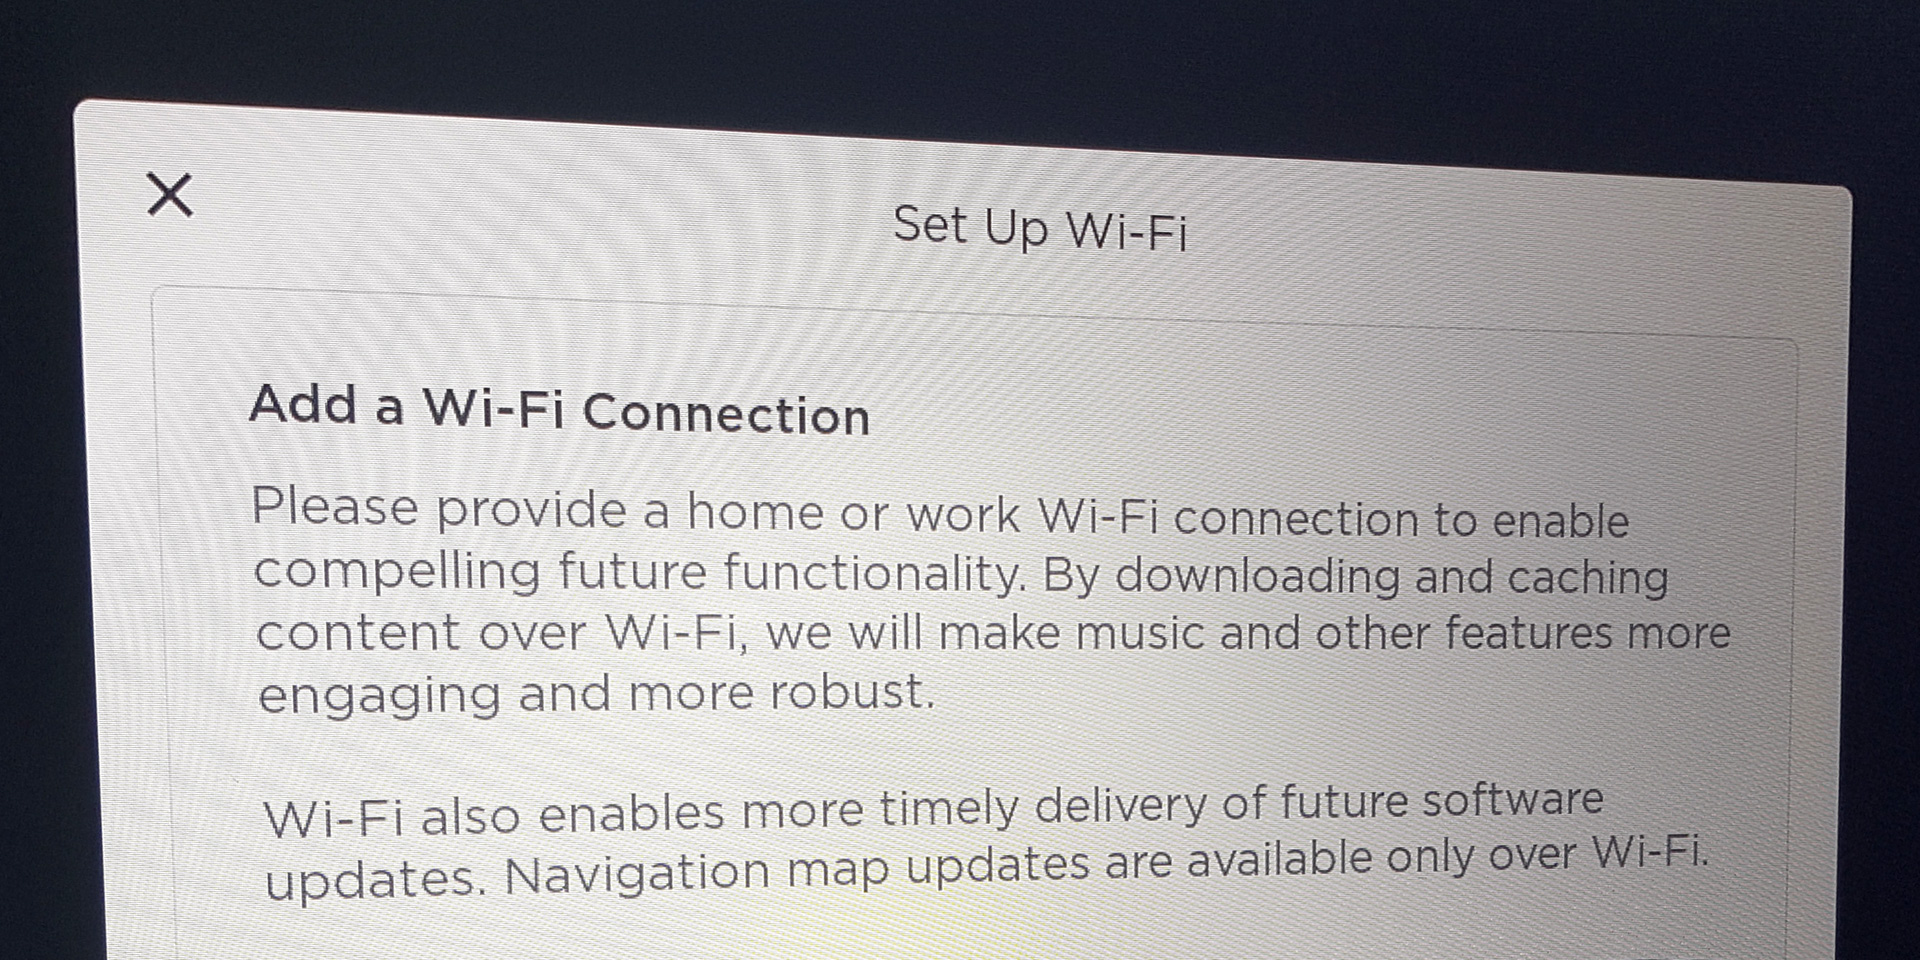 model_x_set_up_wi-fi.jpg